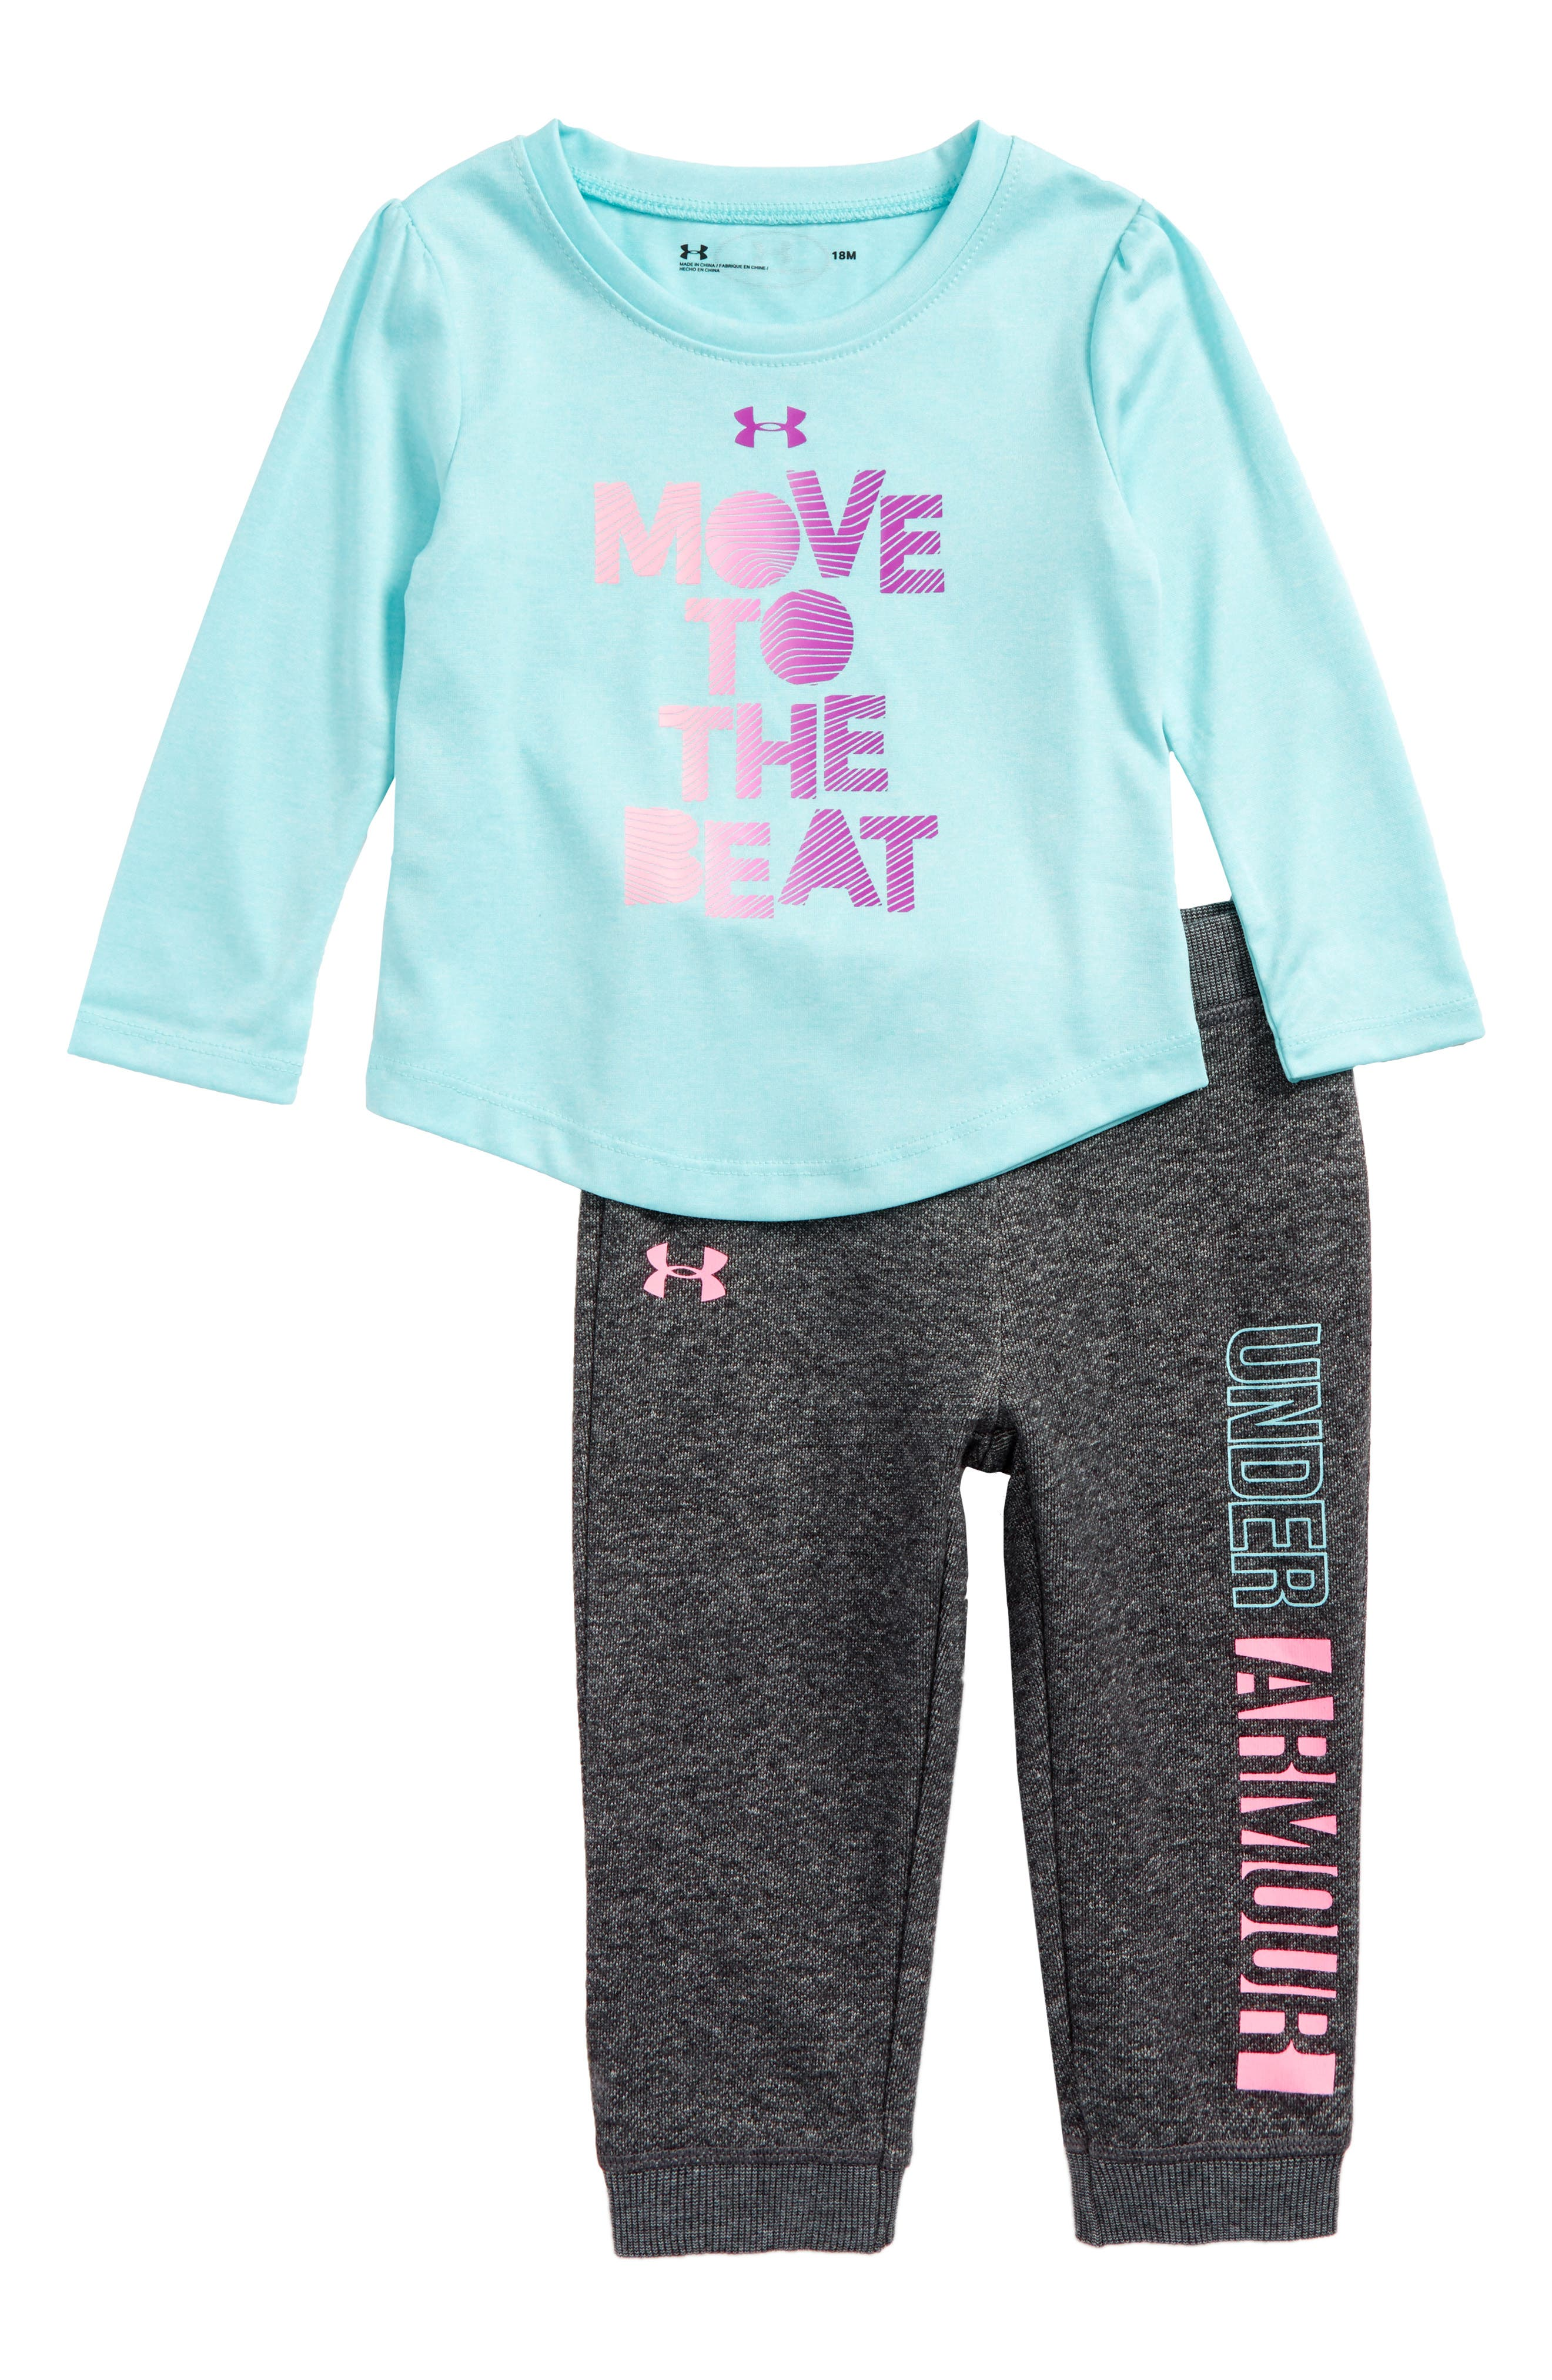 Under Armour Move To The Beat Tee & Pants Set (Baby Girls)